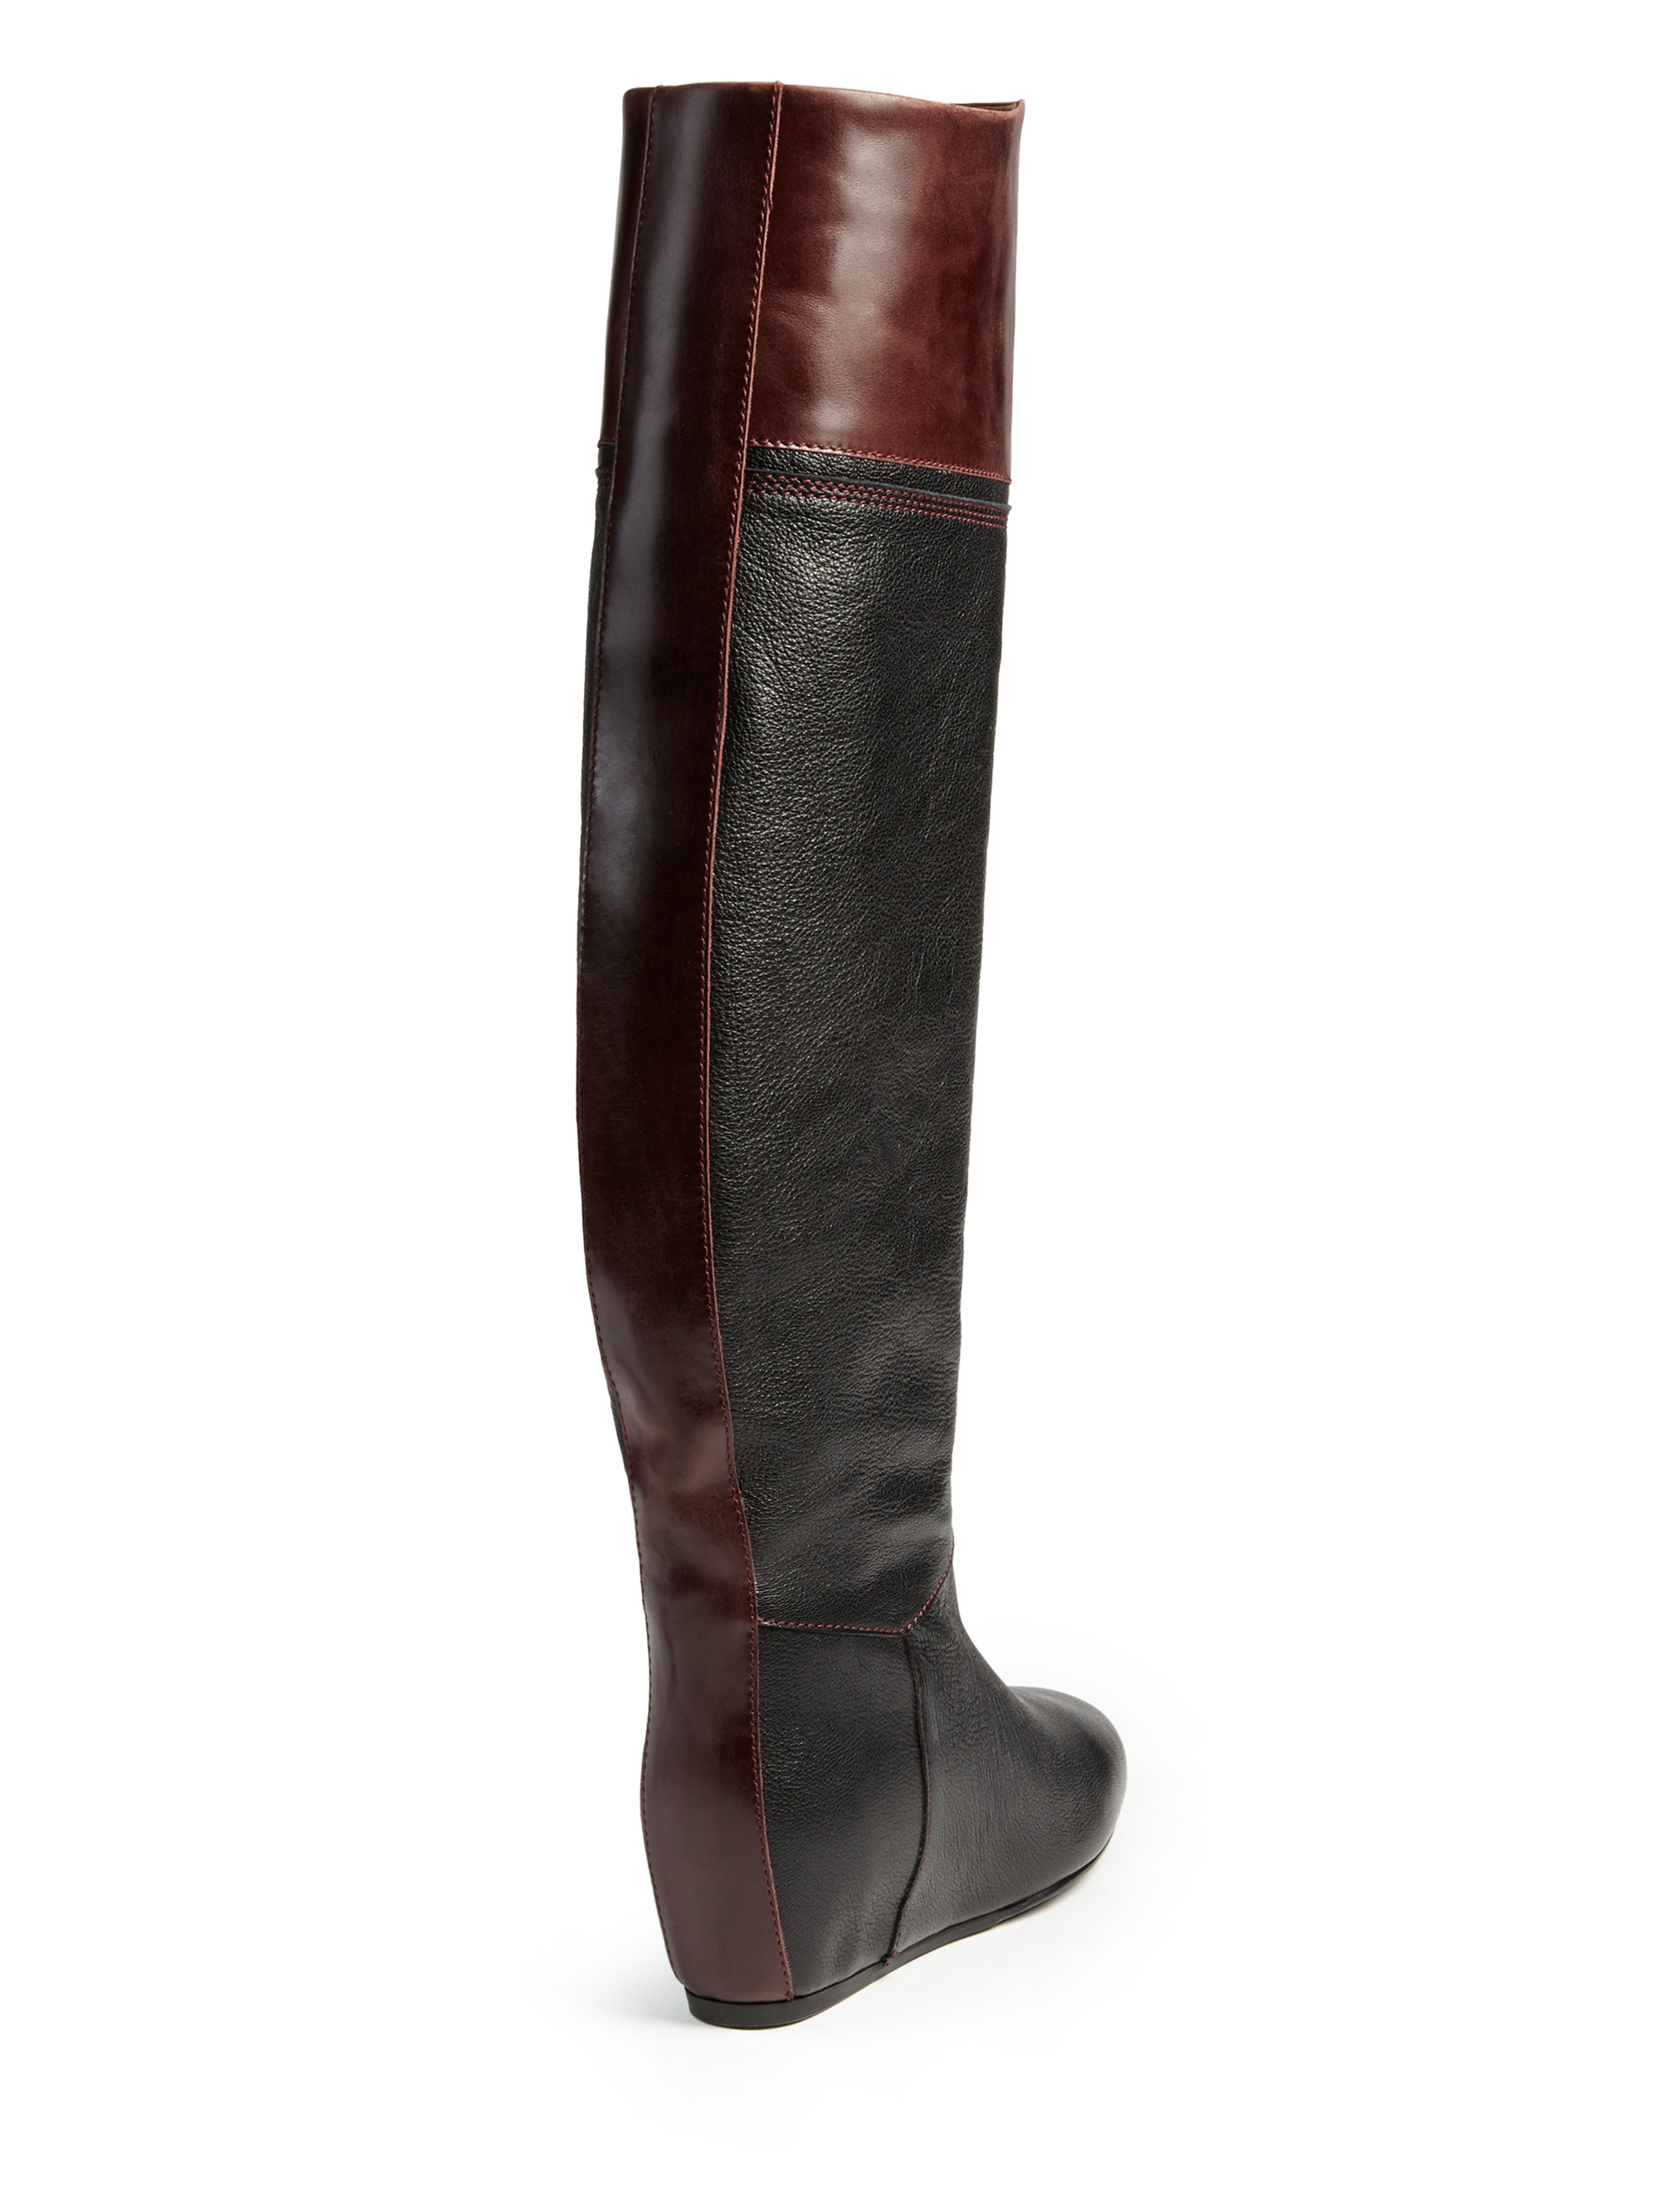 lanvin wedge knee high leather boots in black lyst